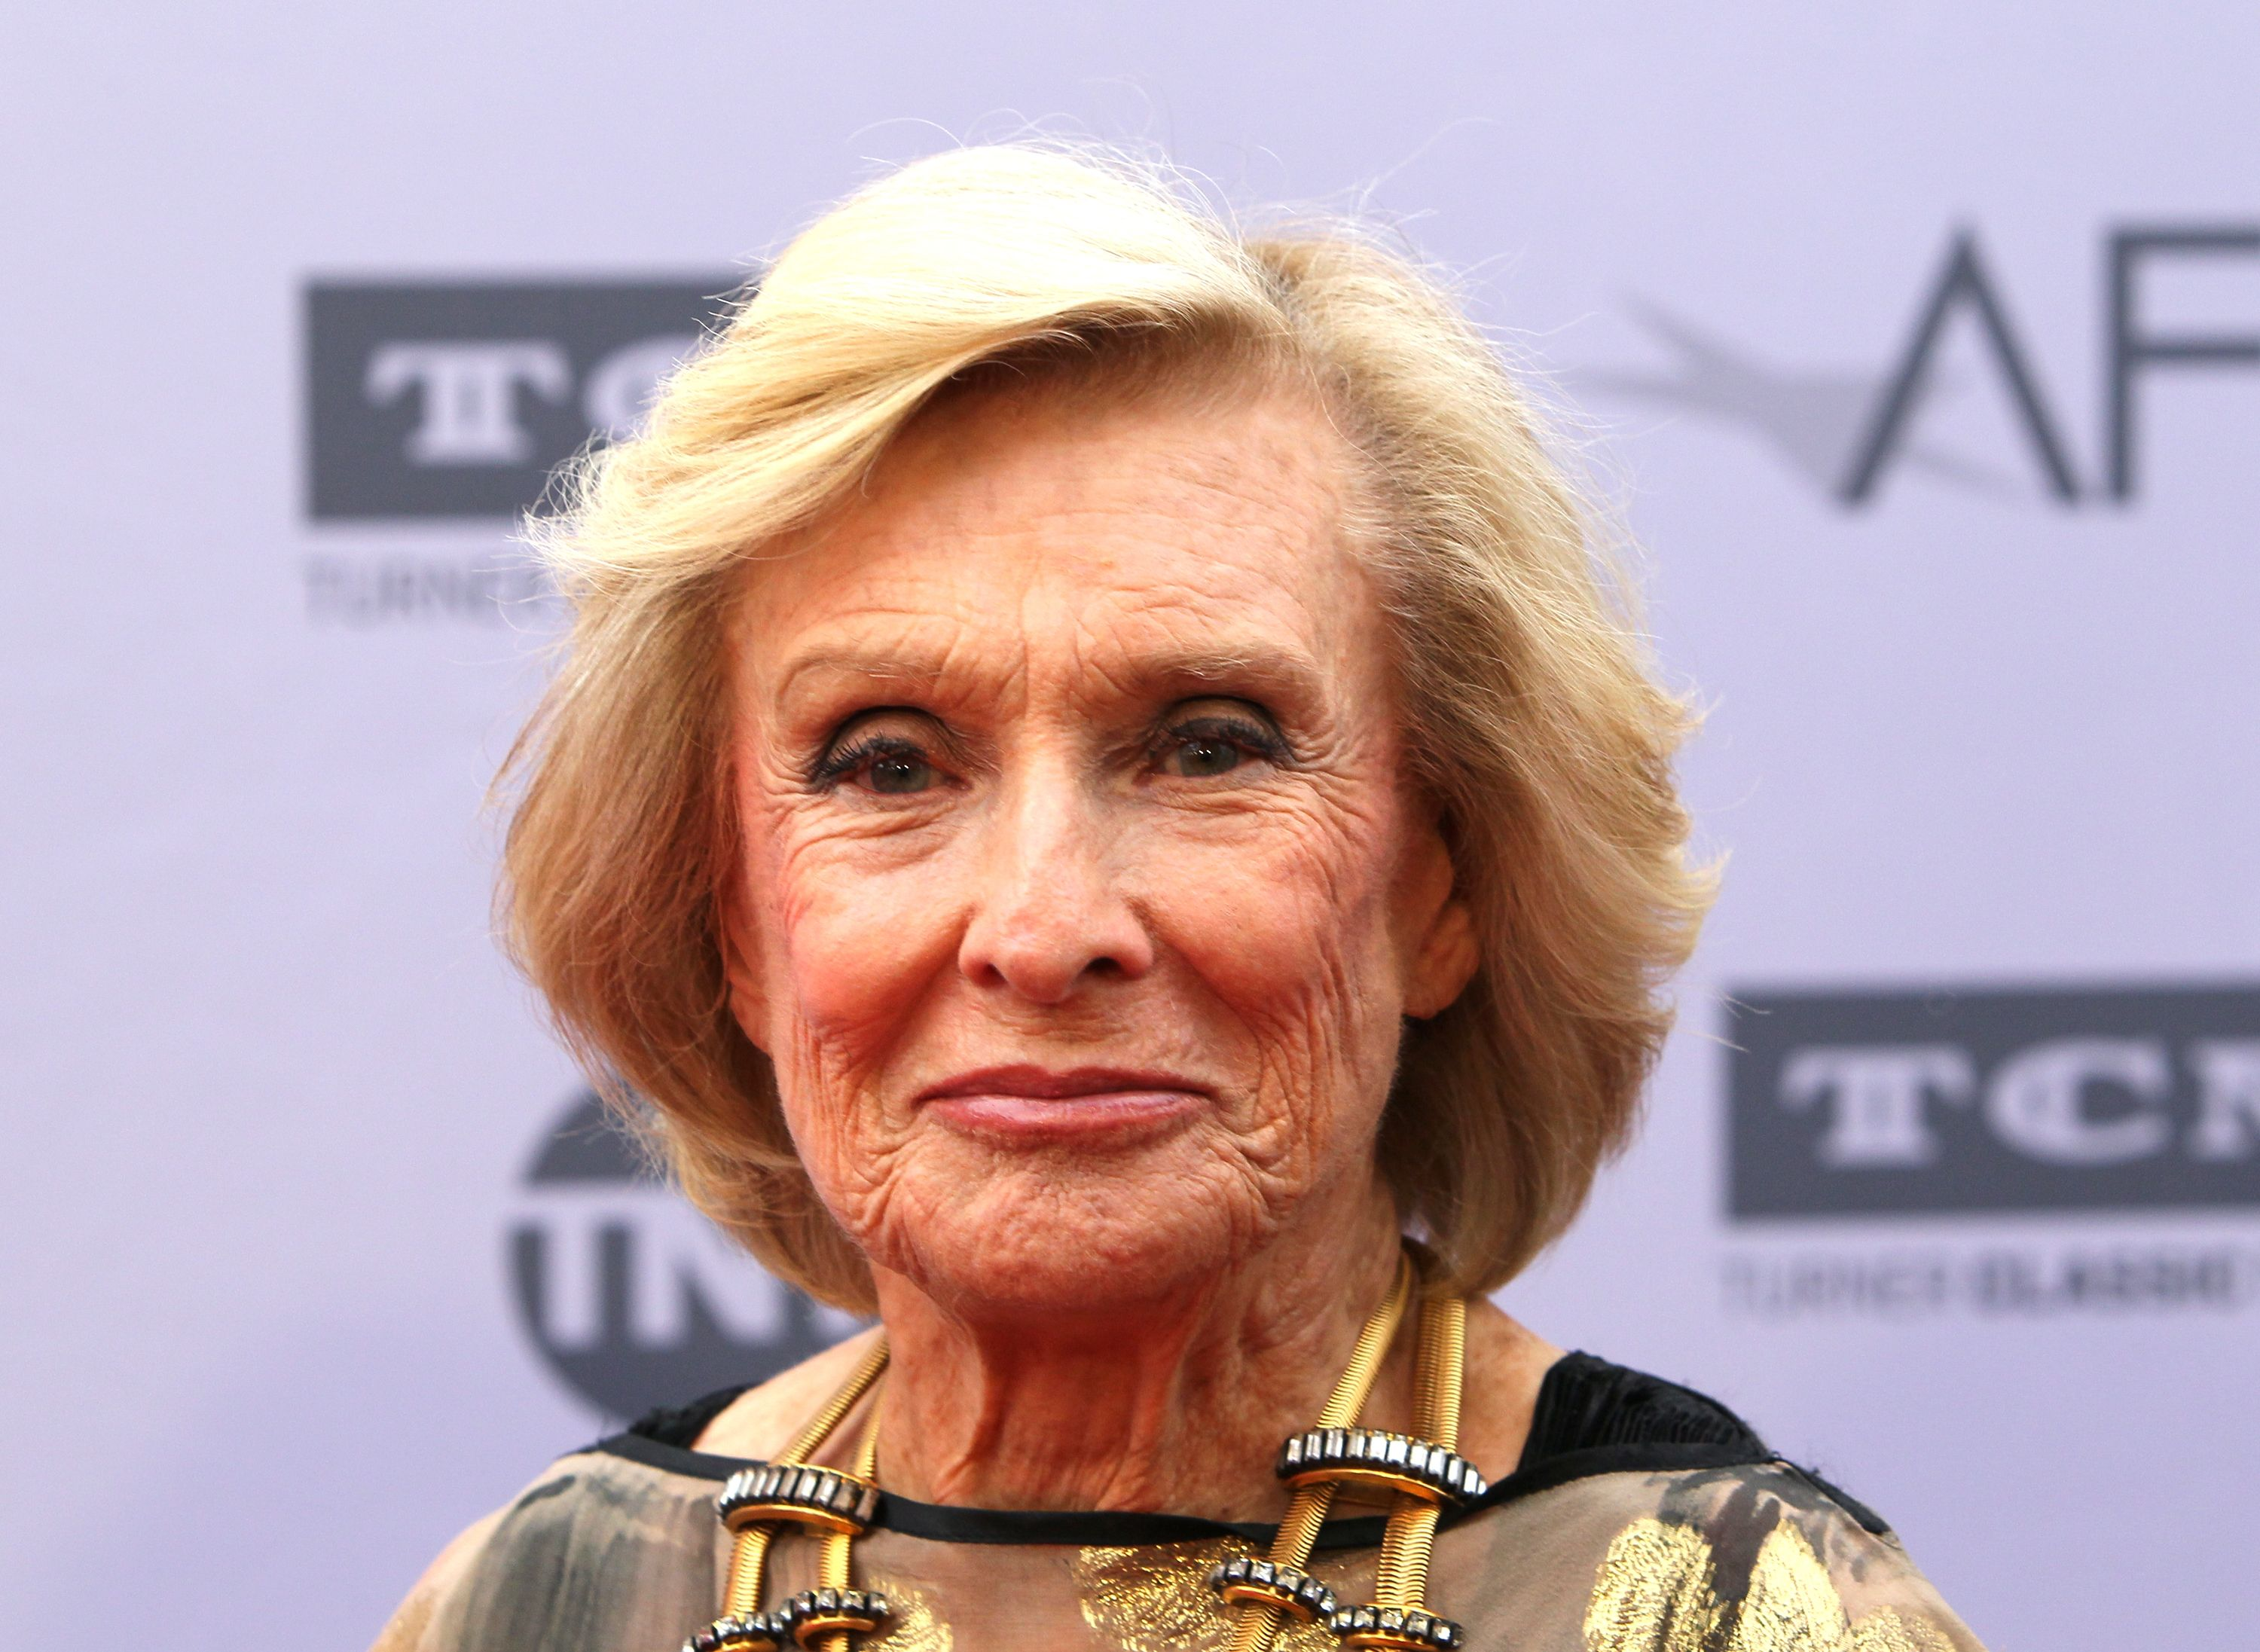 Cloris Leachman at the American Film Institute's 44th Life Achievement Award Gala Tribute to John Williams on June 9, 2016, in Hollywood, California | Photo: David Livingston/Getty Images